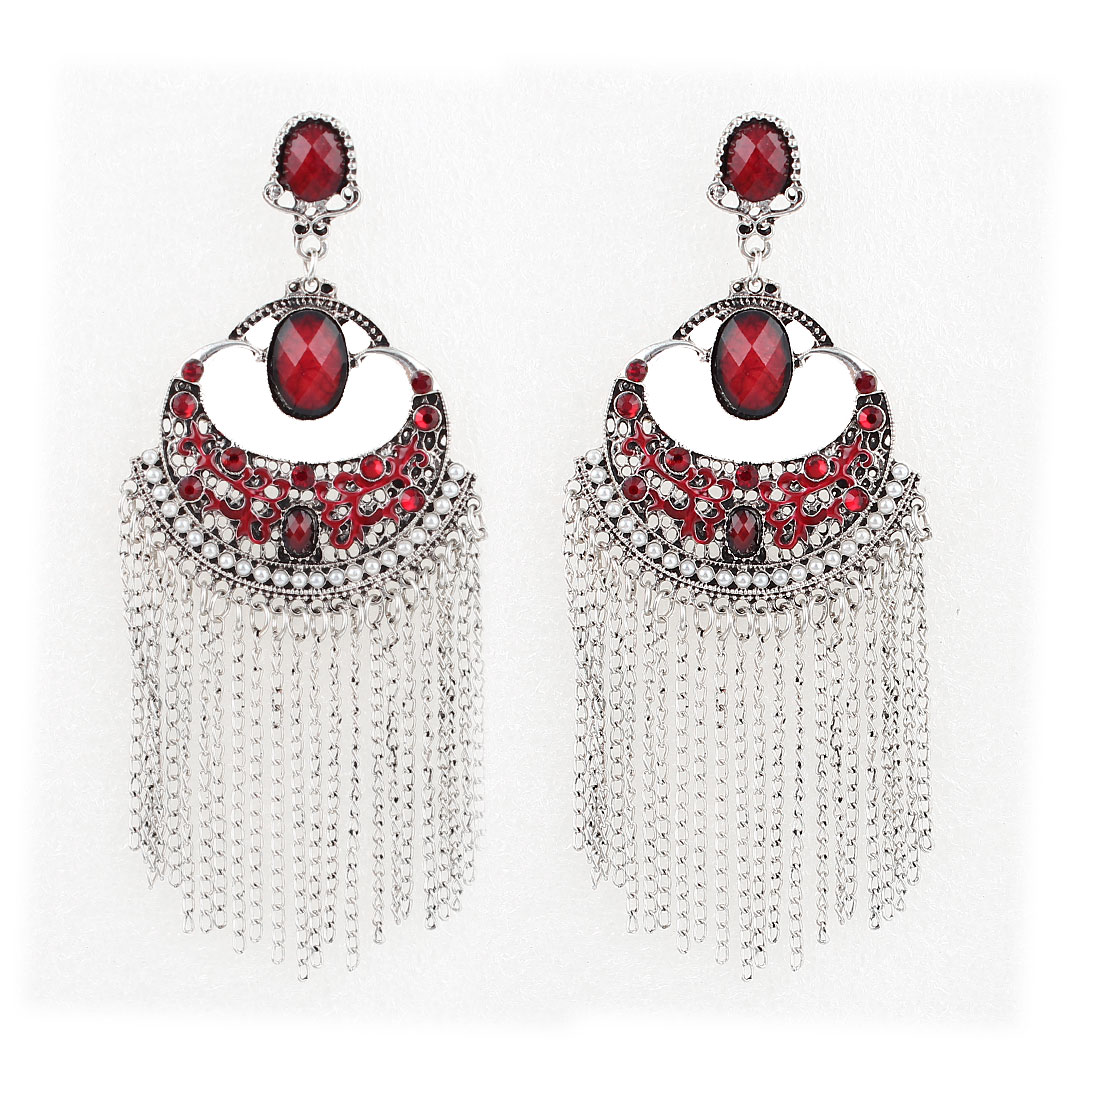 Red Faceted Rhinestone Detailing Gray Metal Chain Tassels Dangling Earrings Pair